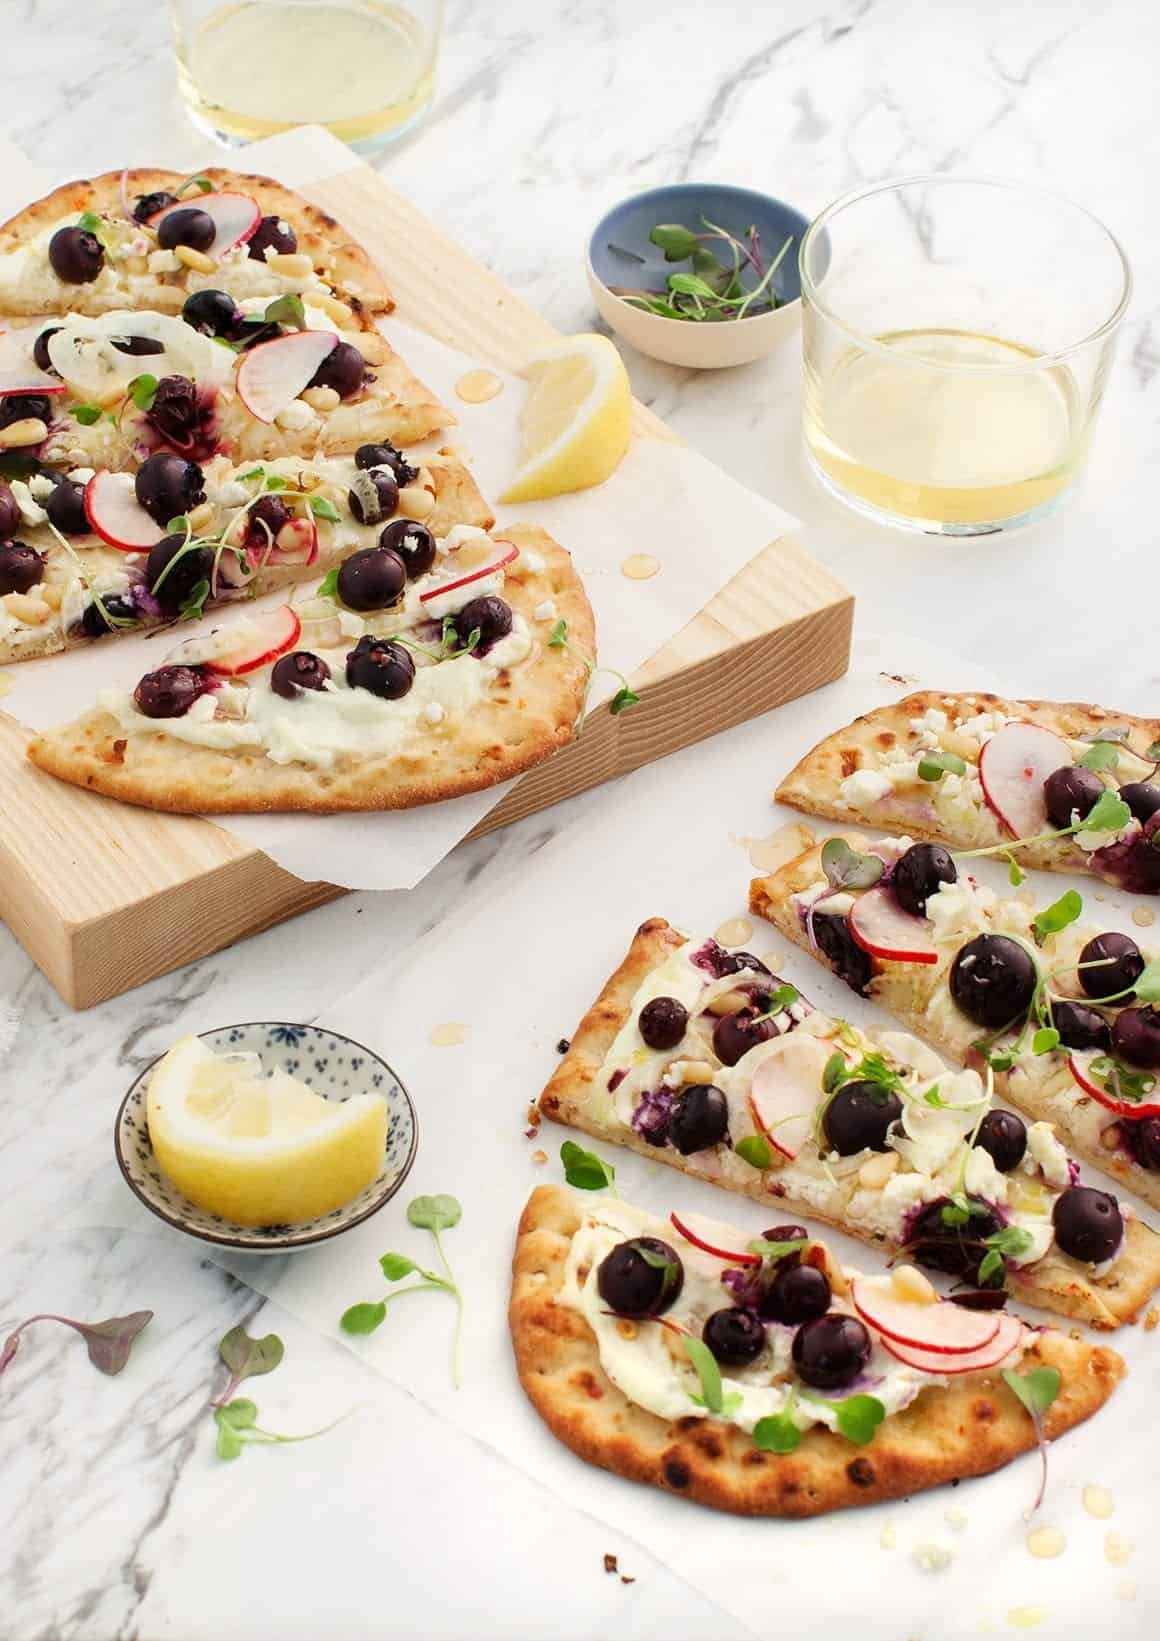 Blueberry Fennel Flatbread w/ Whipped Feta sliced